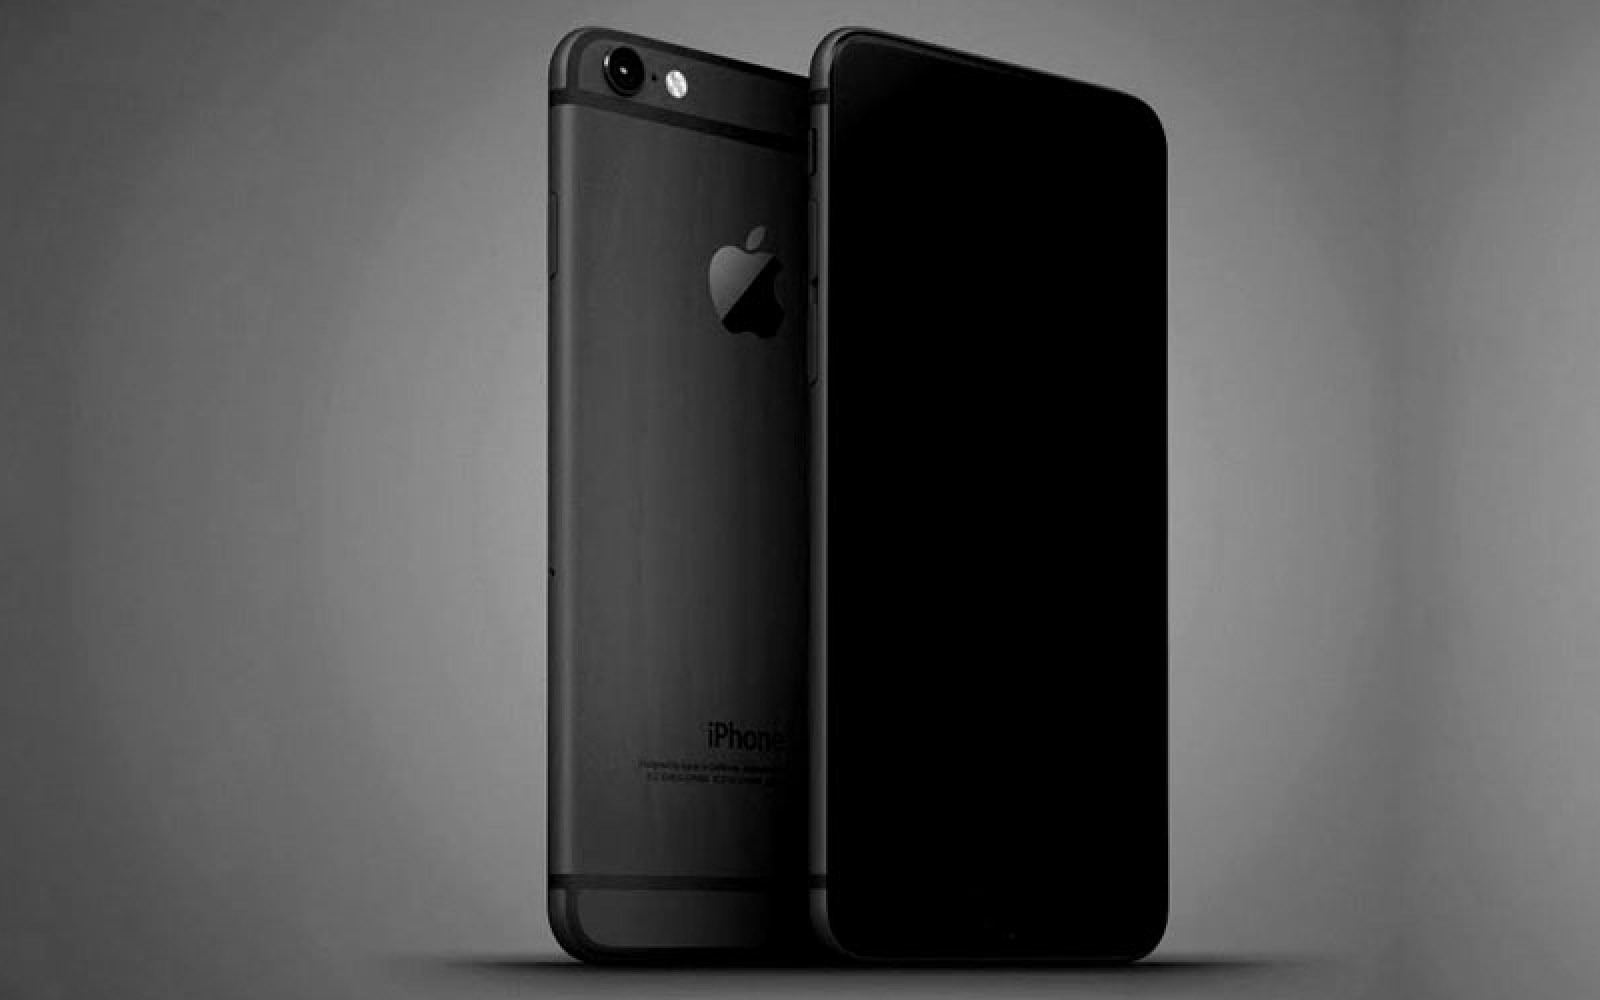 iPhone 7 now seems likely to come in Space Black to match Apple Watch, as other rumors emerge